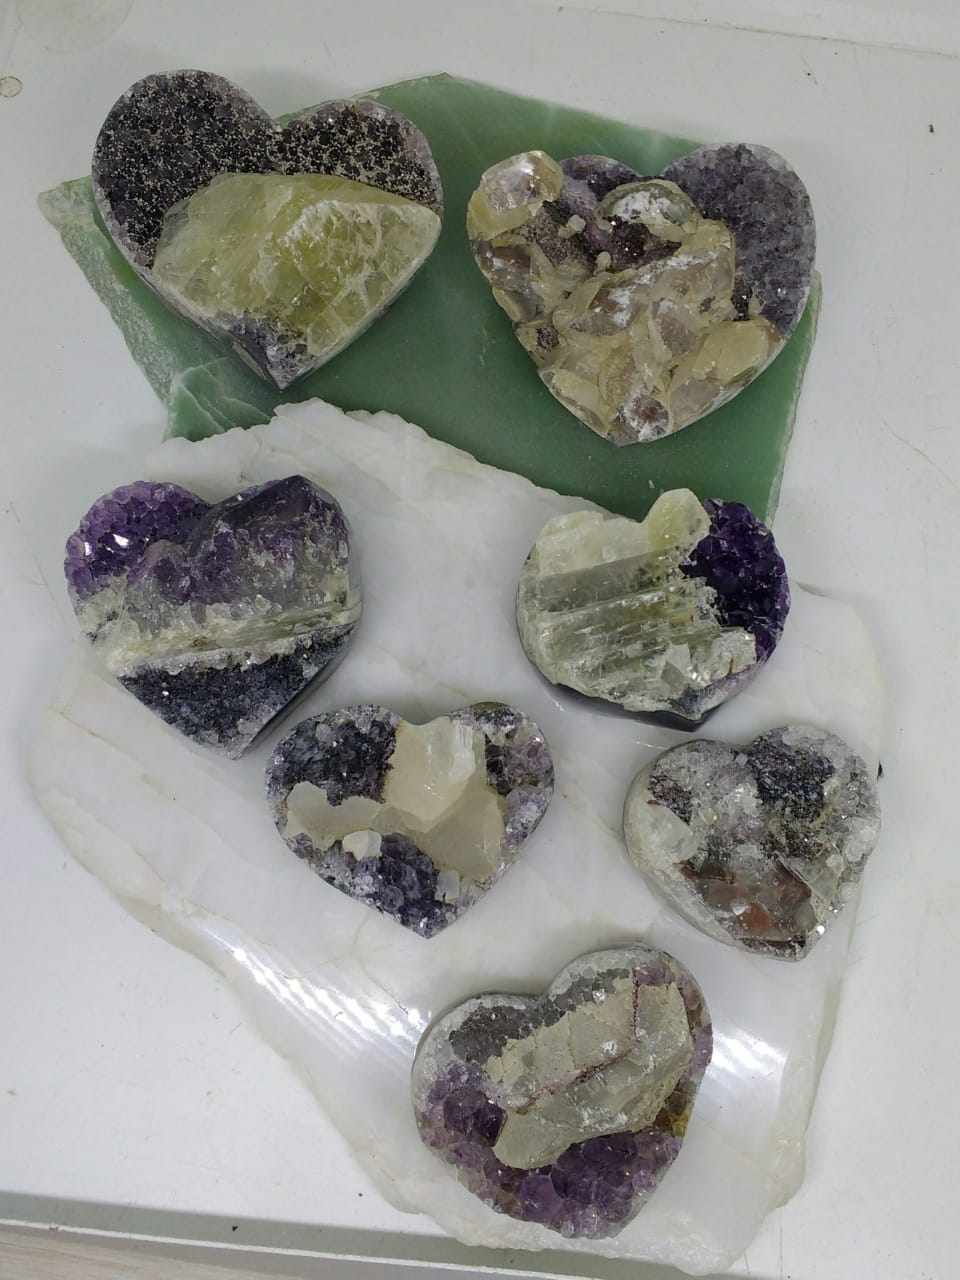 Stones from Uruguay - Amethyst Druzy Hearts with Calcite